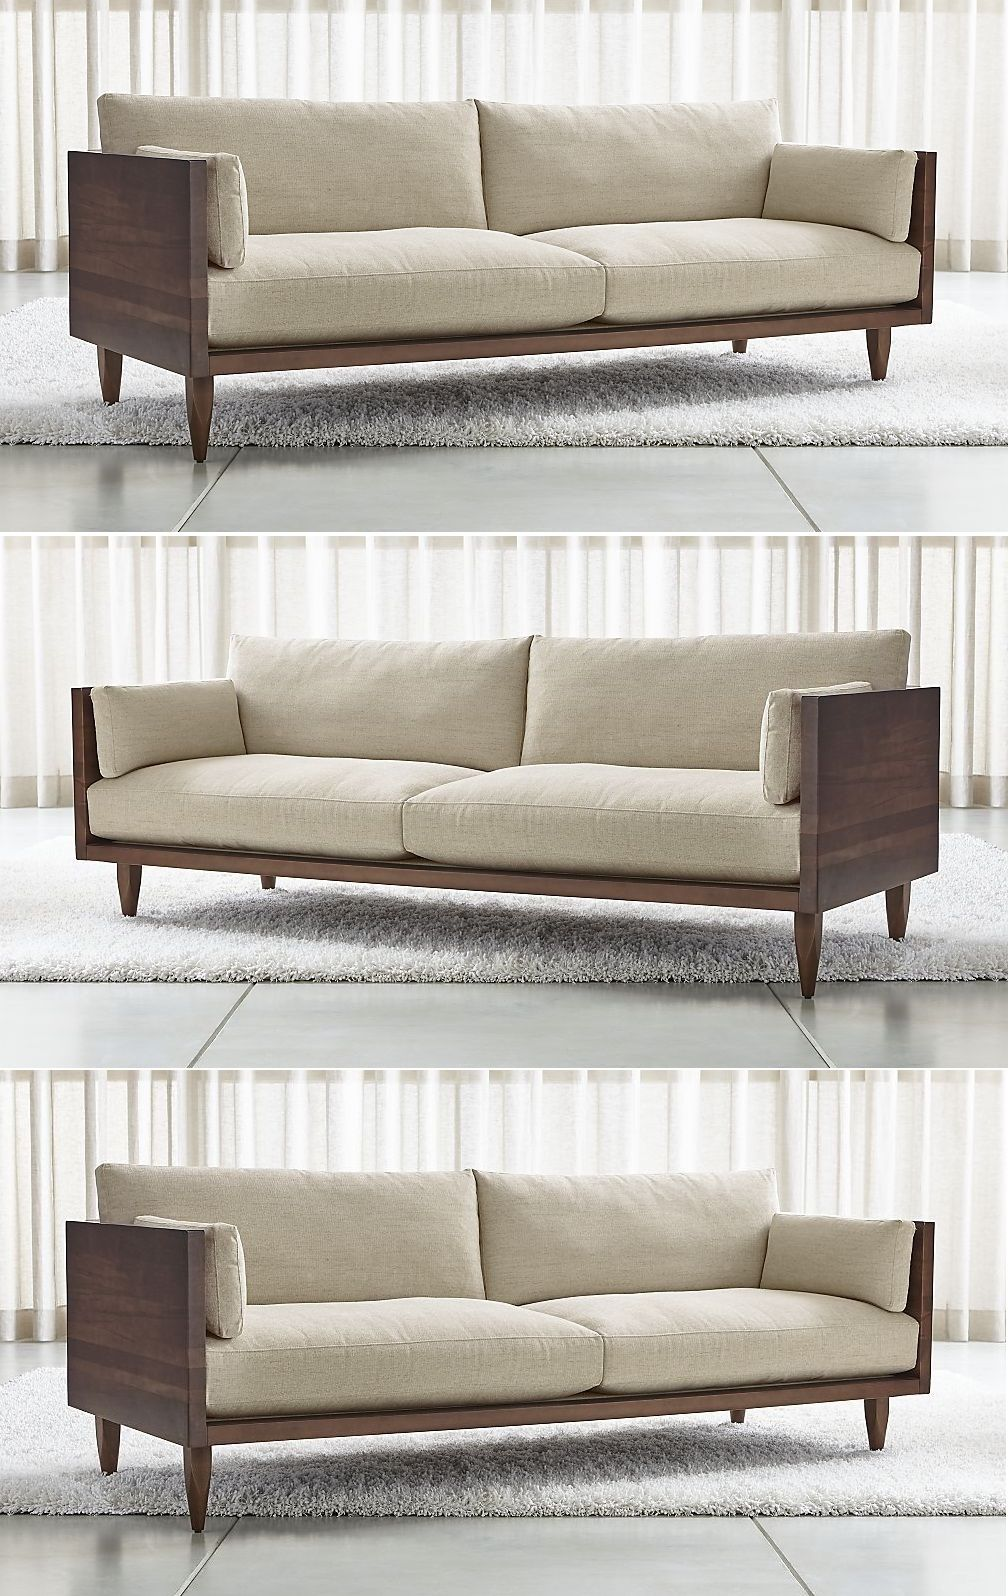 Exposed Wood Frame Sofa For Living Room 2019 (With Images